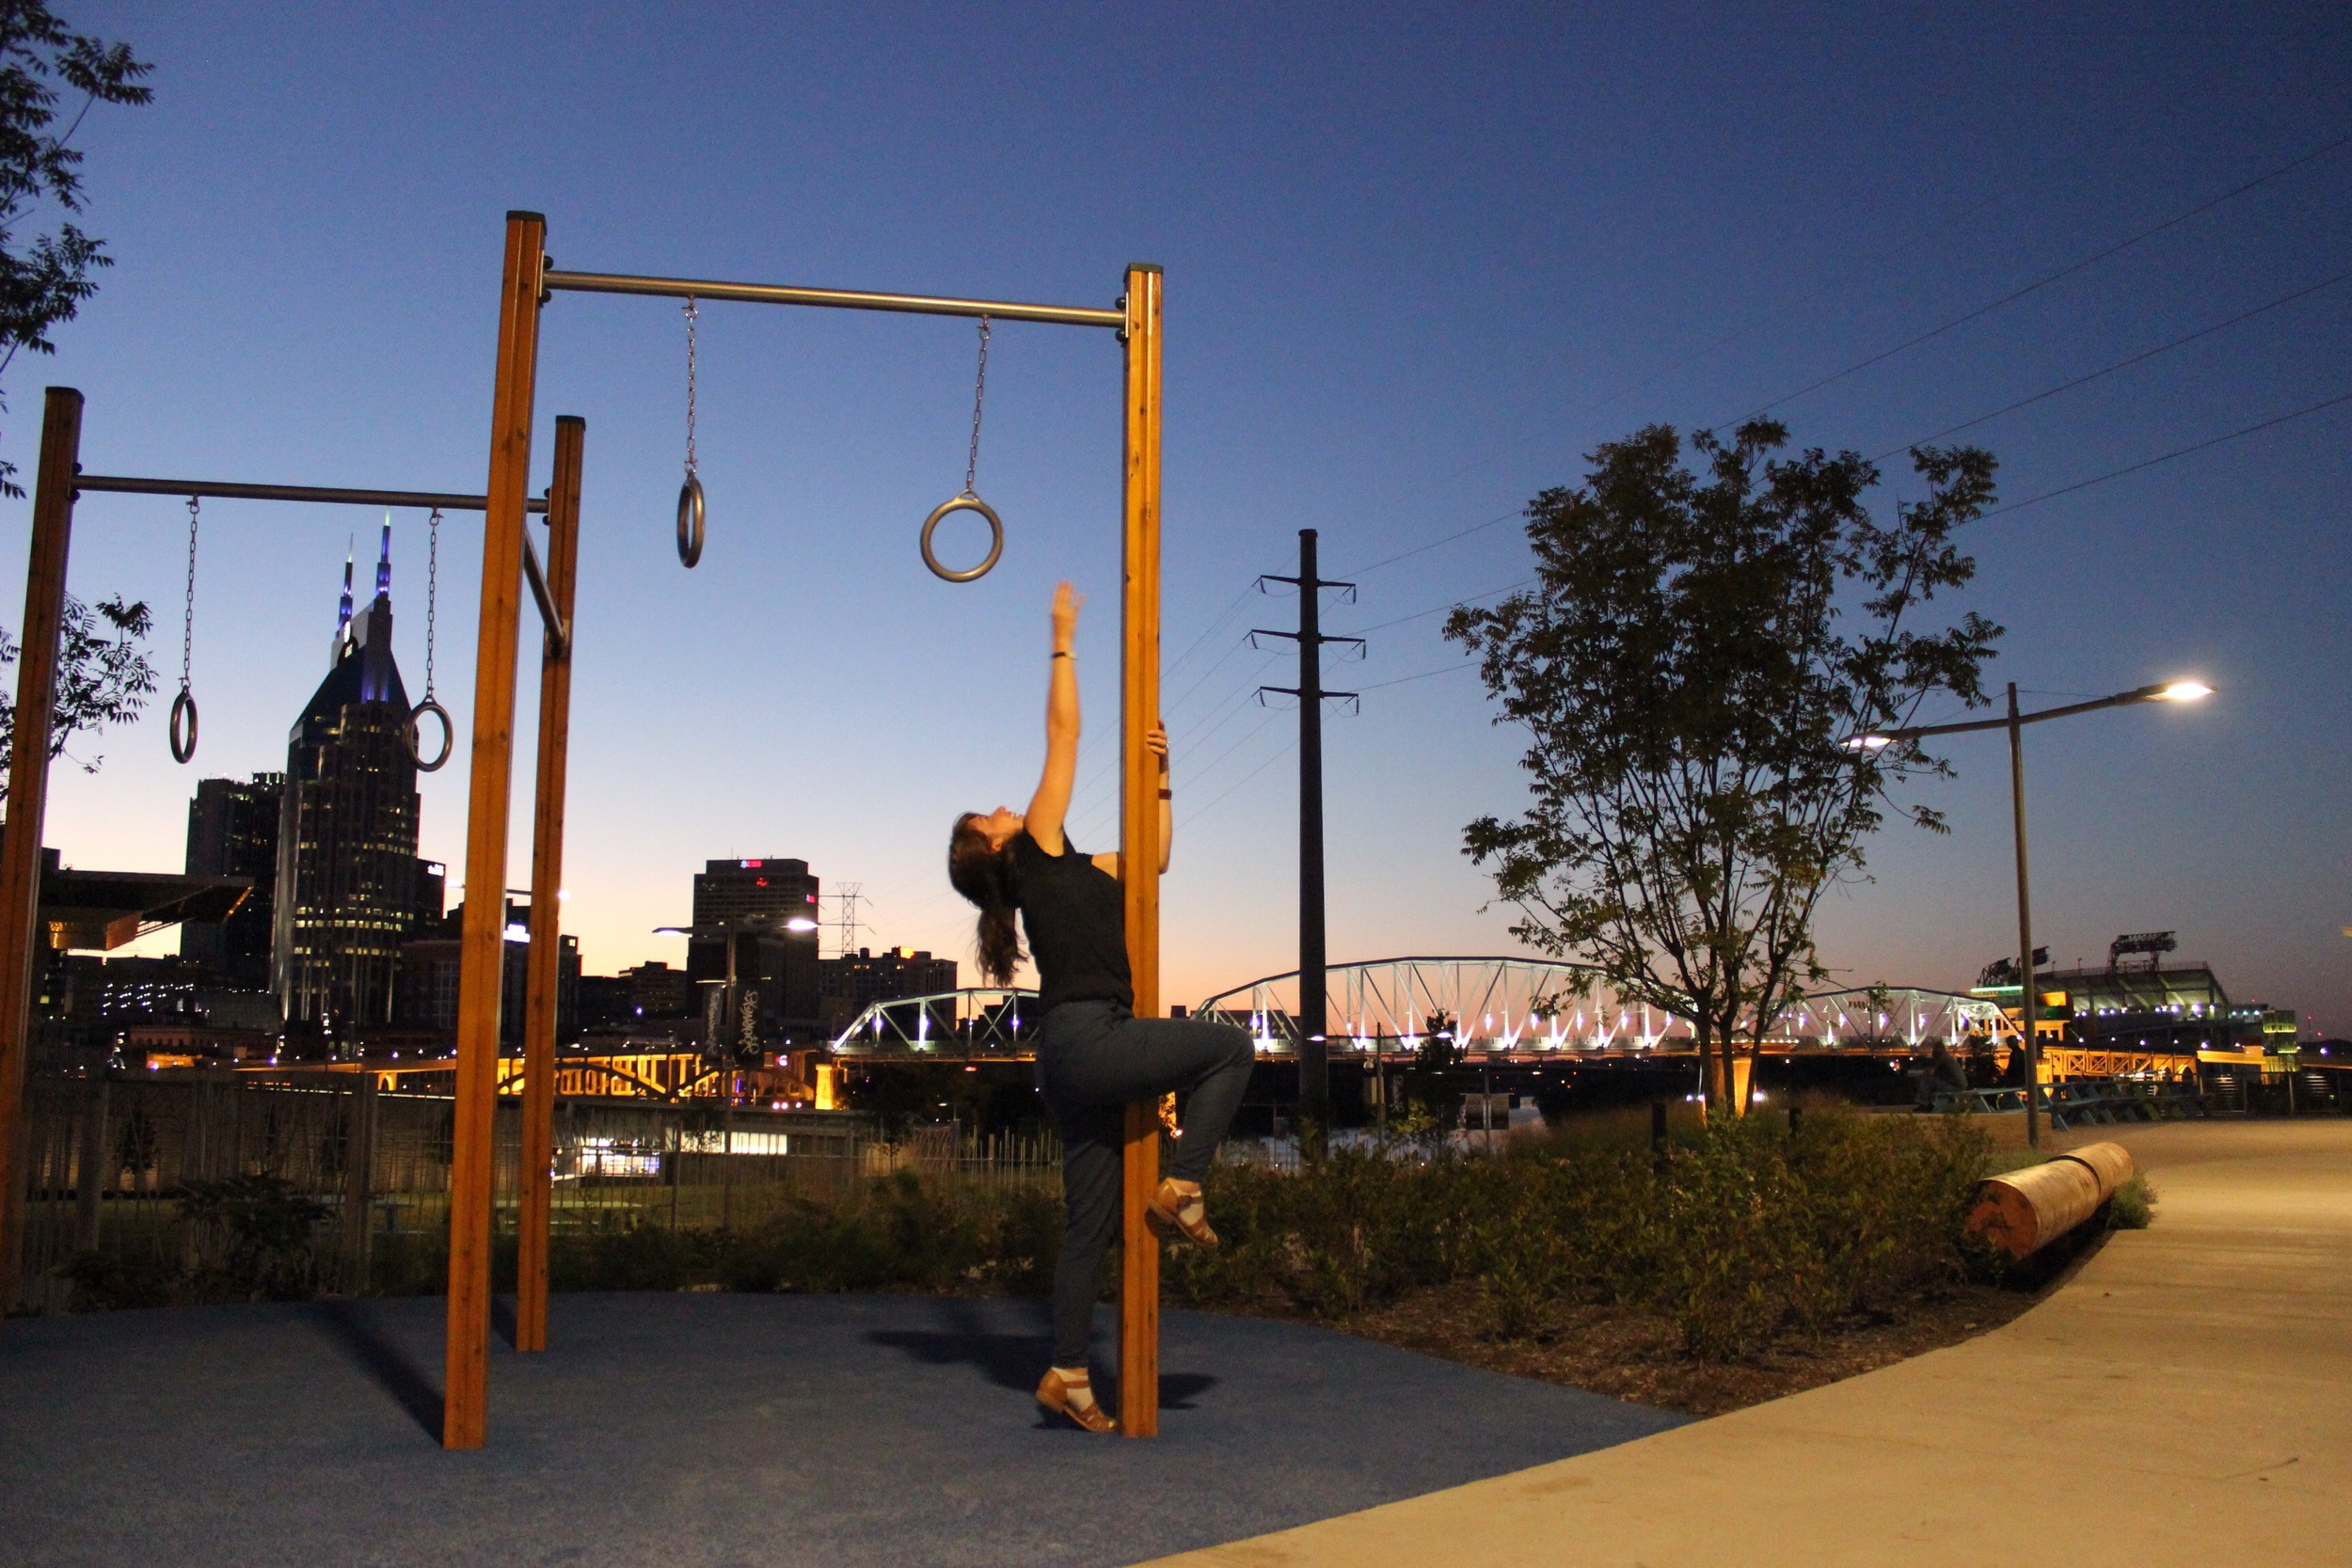 Nashville skyline with a free outdoor gym ...and Georgia struggling with height issues